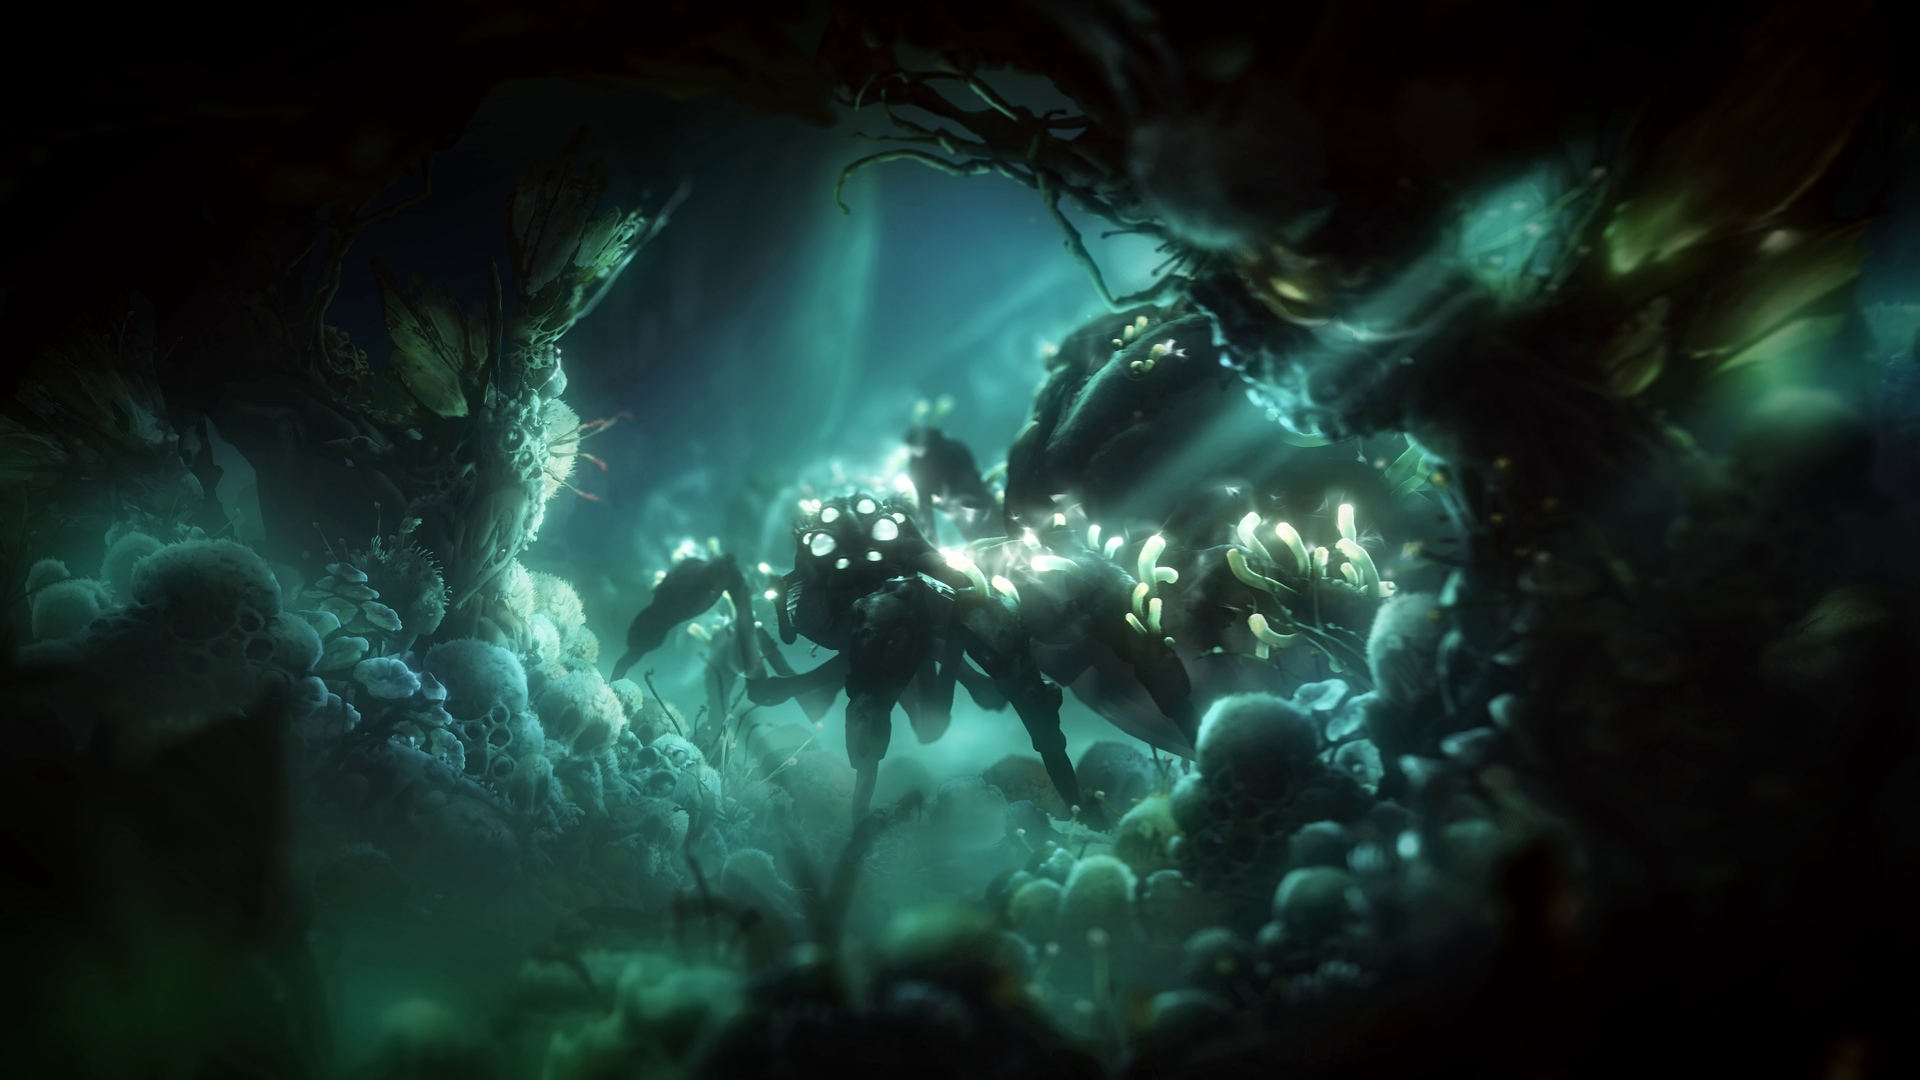 Ori and the Will of the Wisps Game 5 Wallpapers 1920x1080